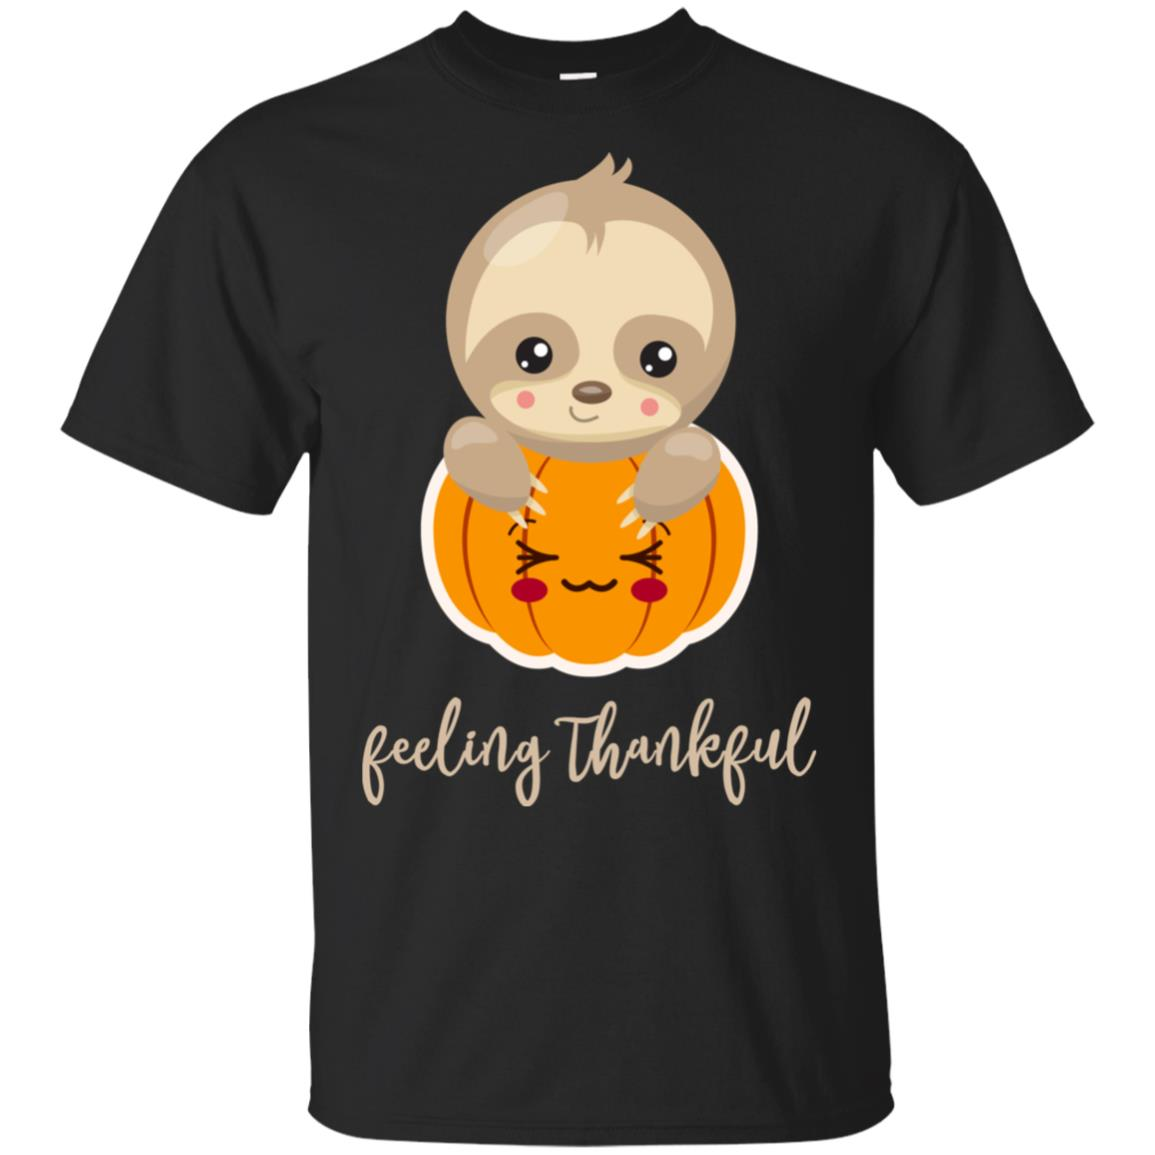 Sloth Feeling Thankful Cute Thanksgiving Gift Tee Unisex Short Sleeve